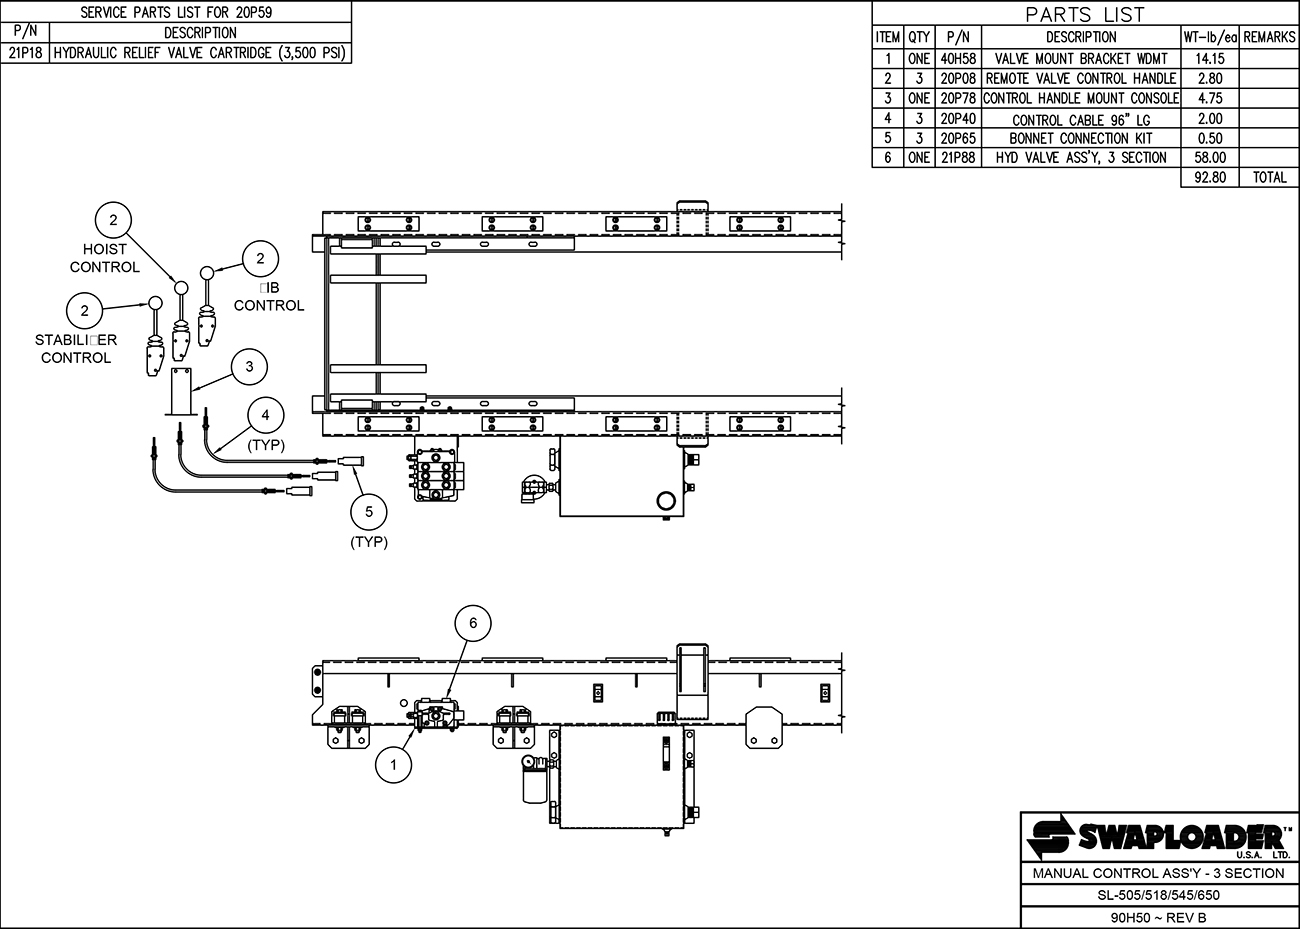 SL-518/650 Manual Control Assembly (3 Section) Diagram